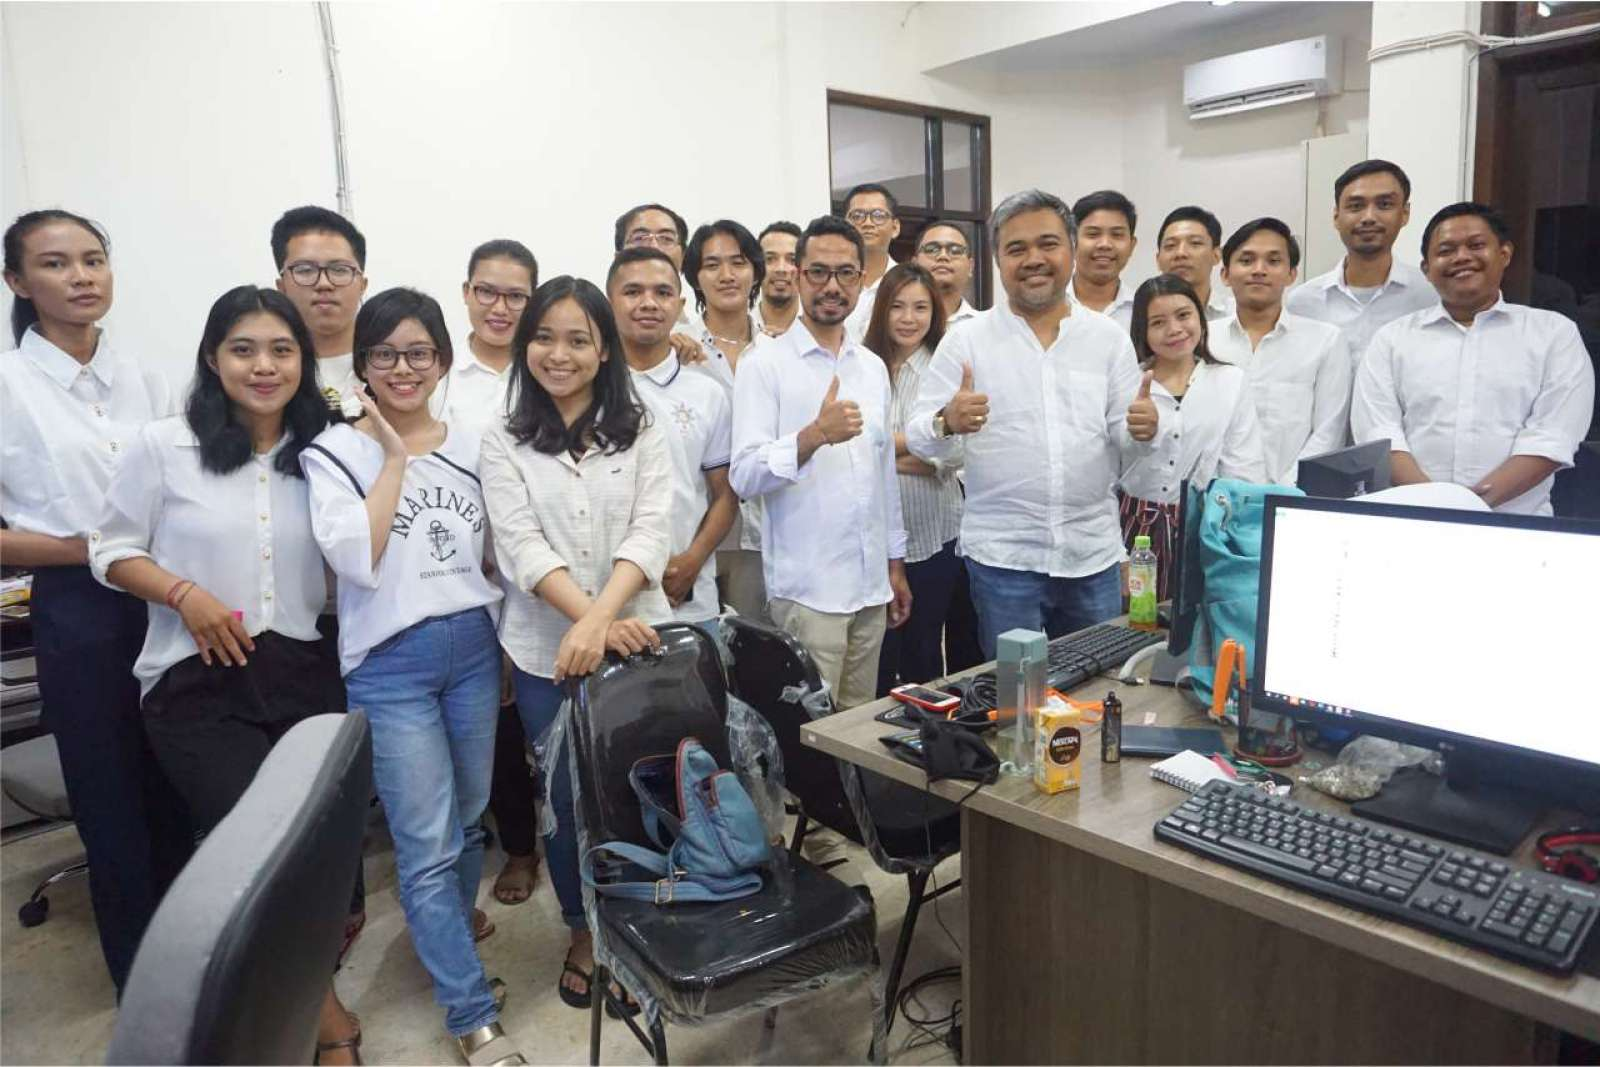 Photo with the Emporio Bali Architect Team Before Working From Home Because of the COVID-19 Virus Pa 2